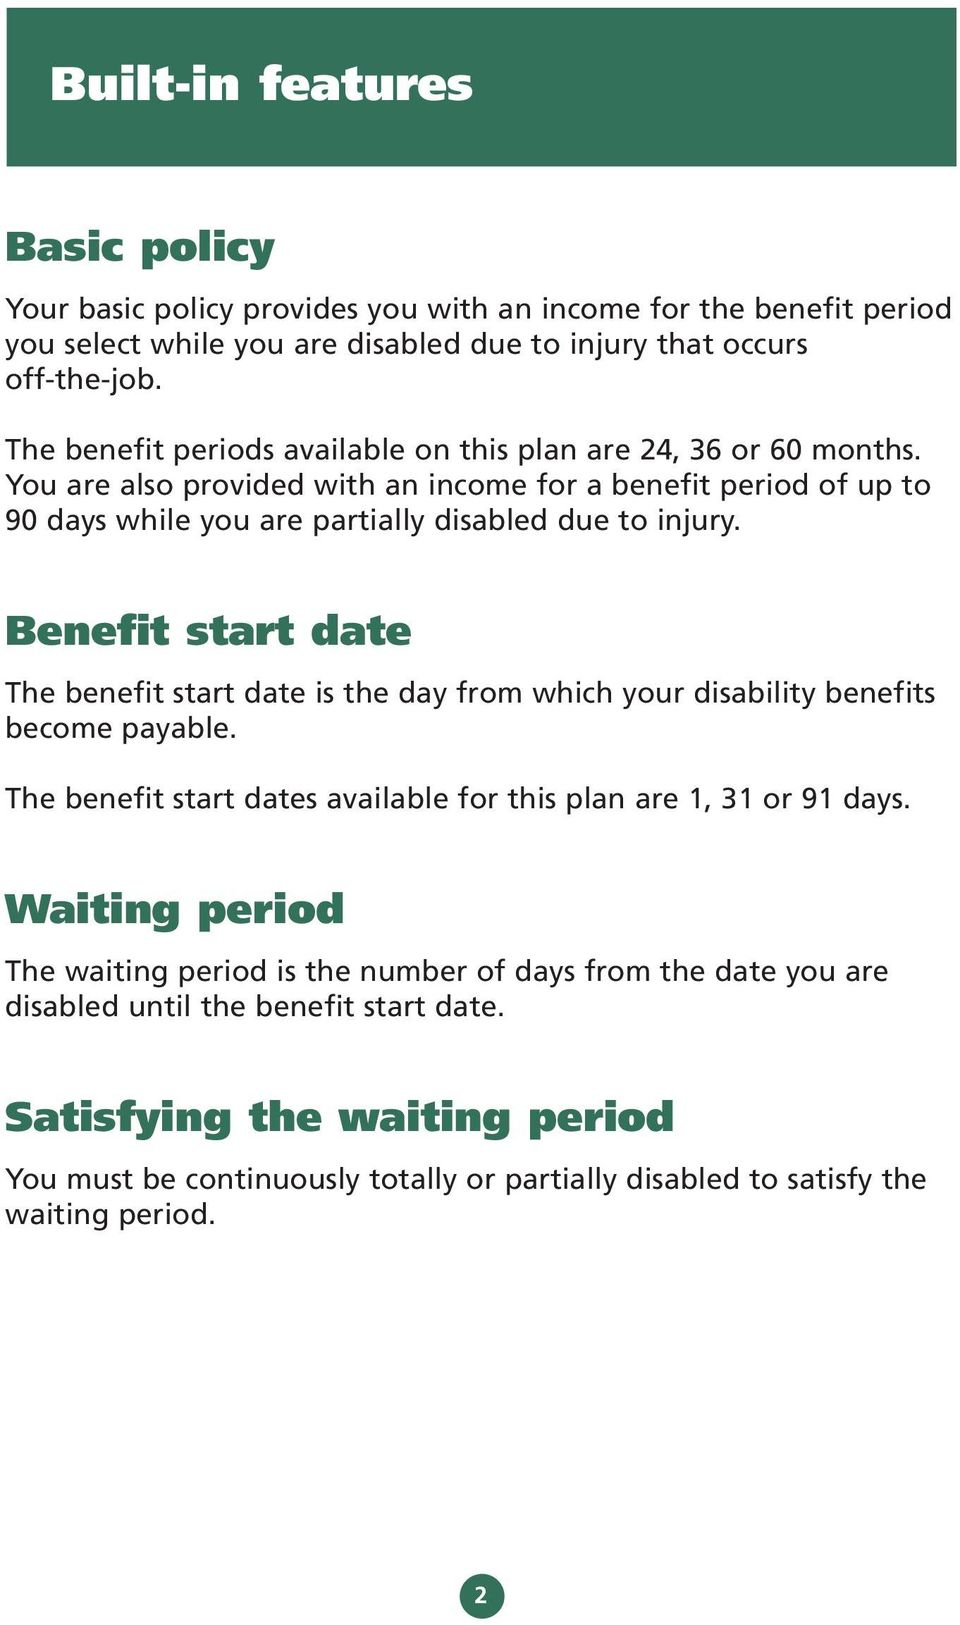 Benefit start date The benefit start date is the day from which your disability benefits become payable. The benefit start dates available for this plan are 1, 31 or 91 days.